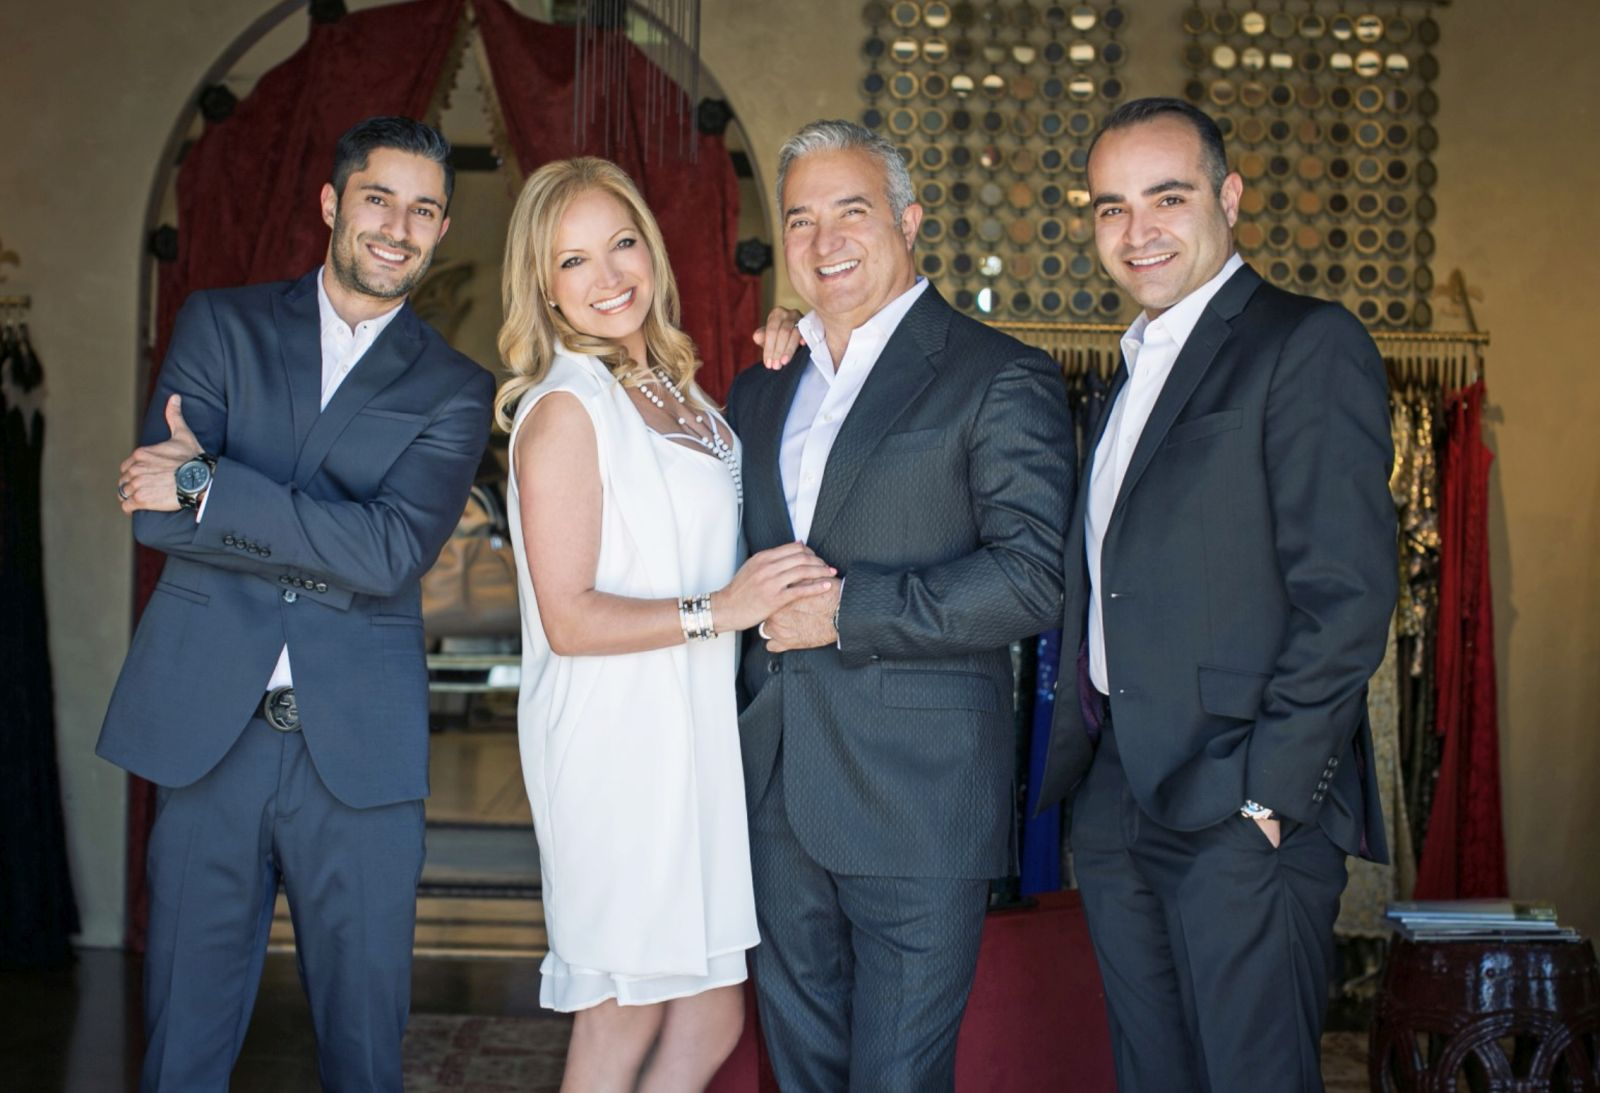 Corporate Photography - Group Shots - 012